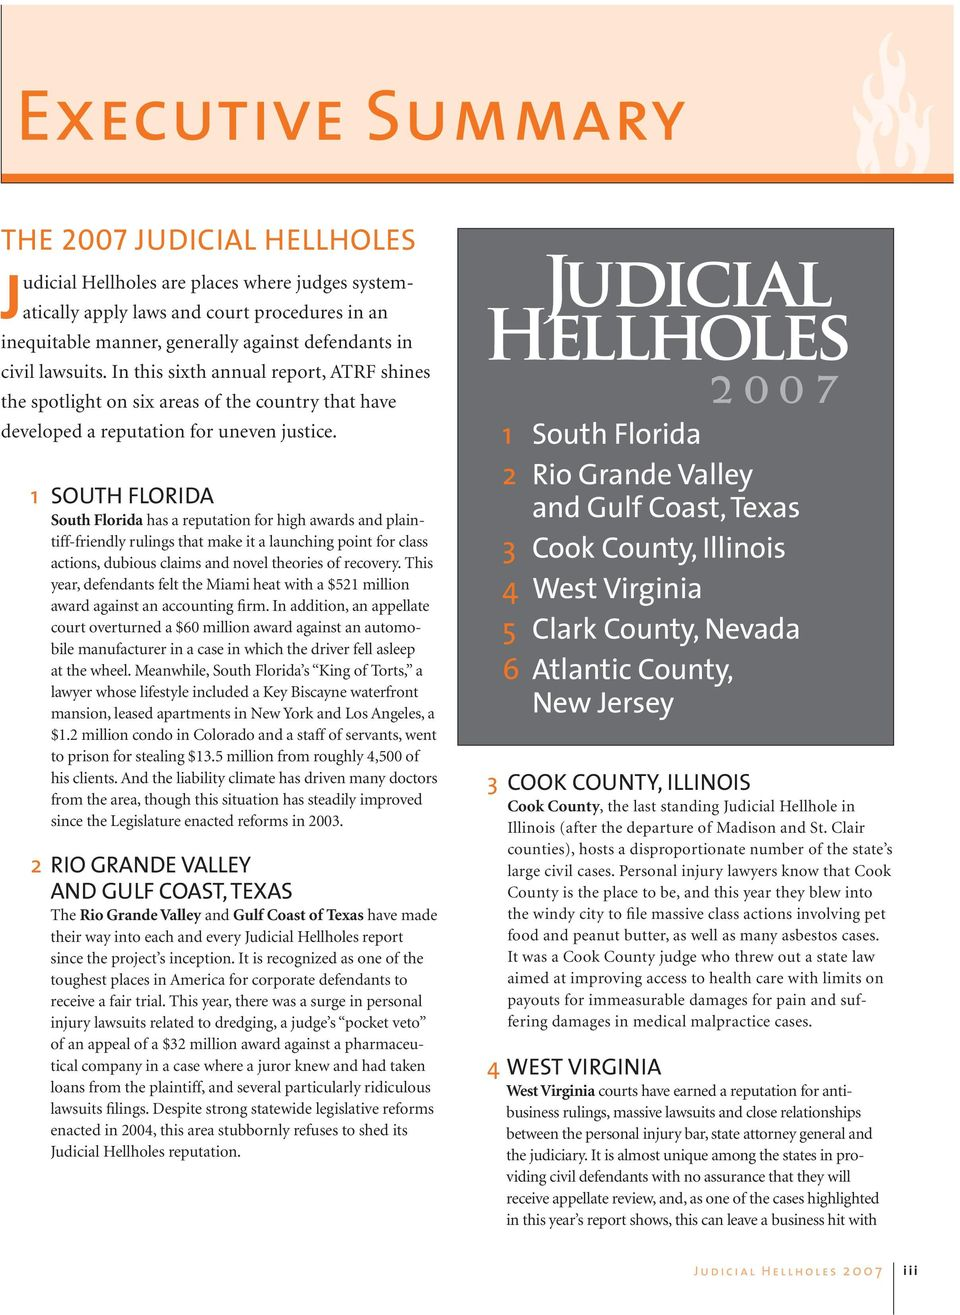 1 SOUTH FLORIDA South Florida has a reputation for high awards and plaintiff-friendly rulings that make it a launching point for class actions, dubious claims and novel theories of recovery.